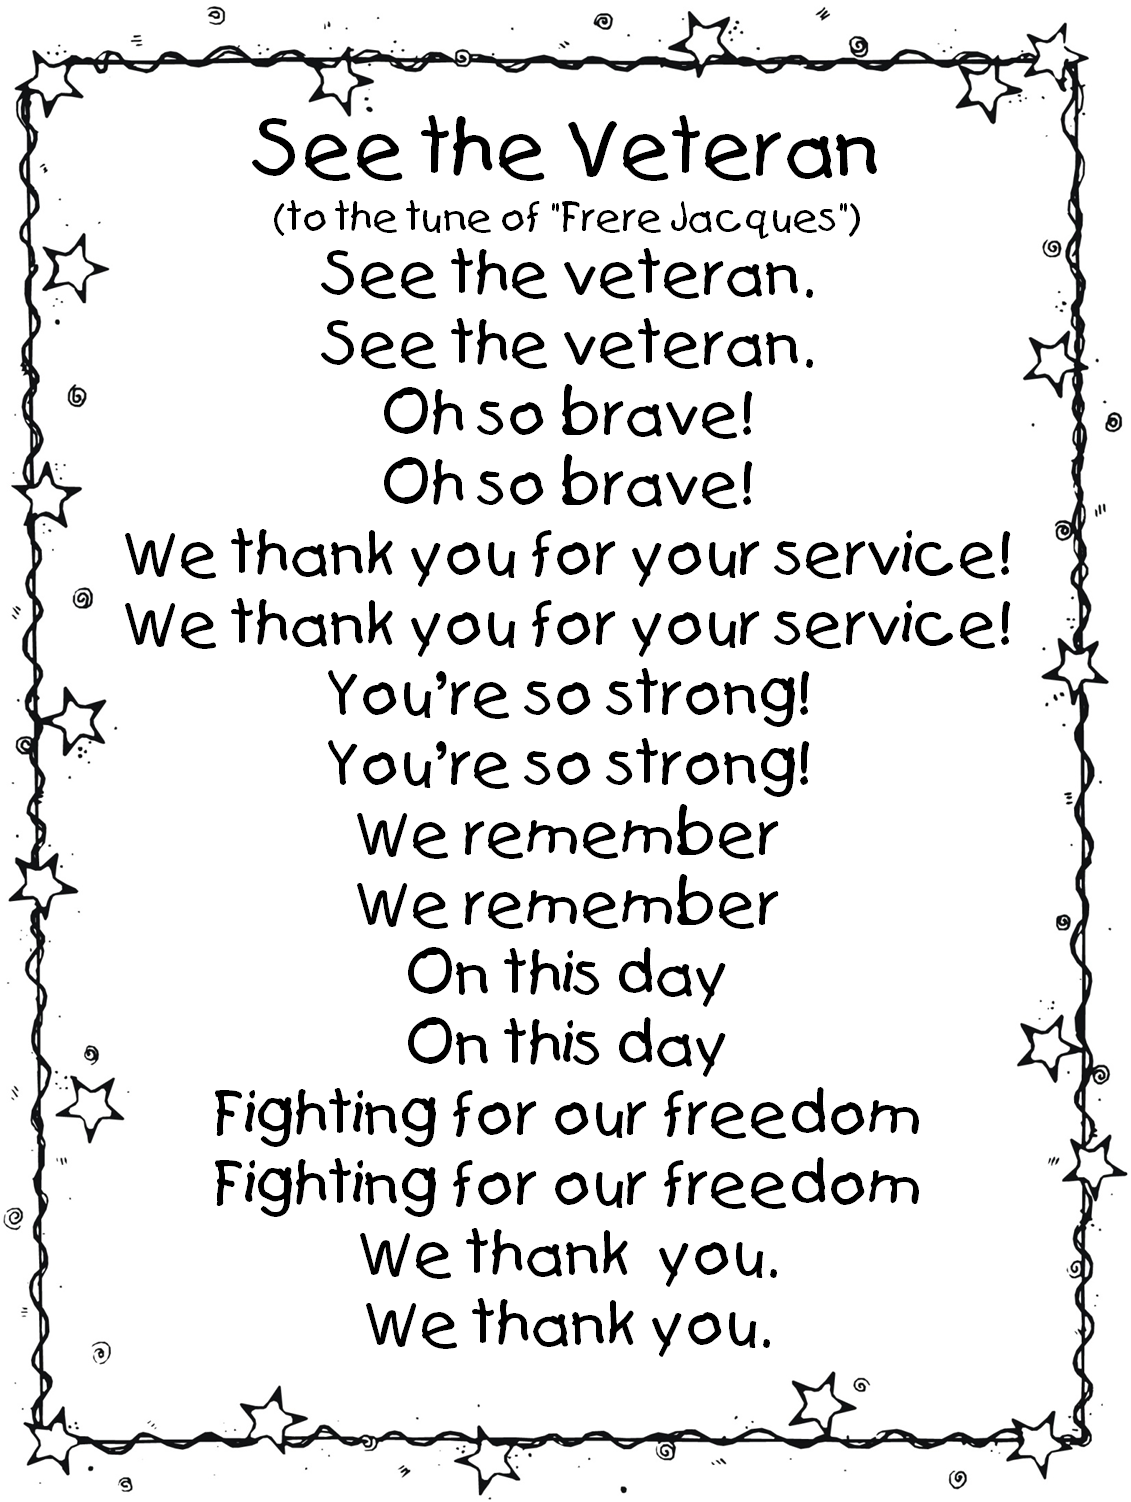 Poem written by veteran republished around the world every Remembrance Day